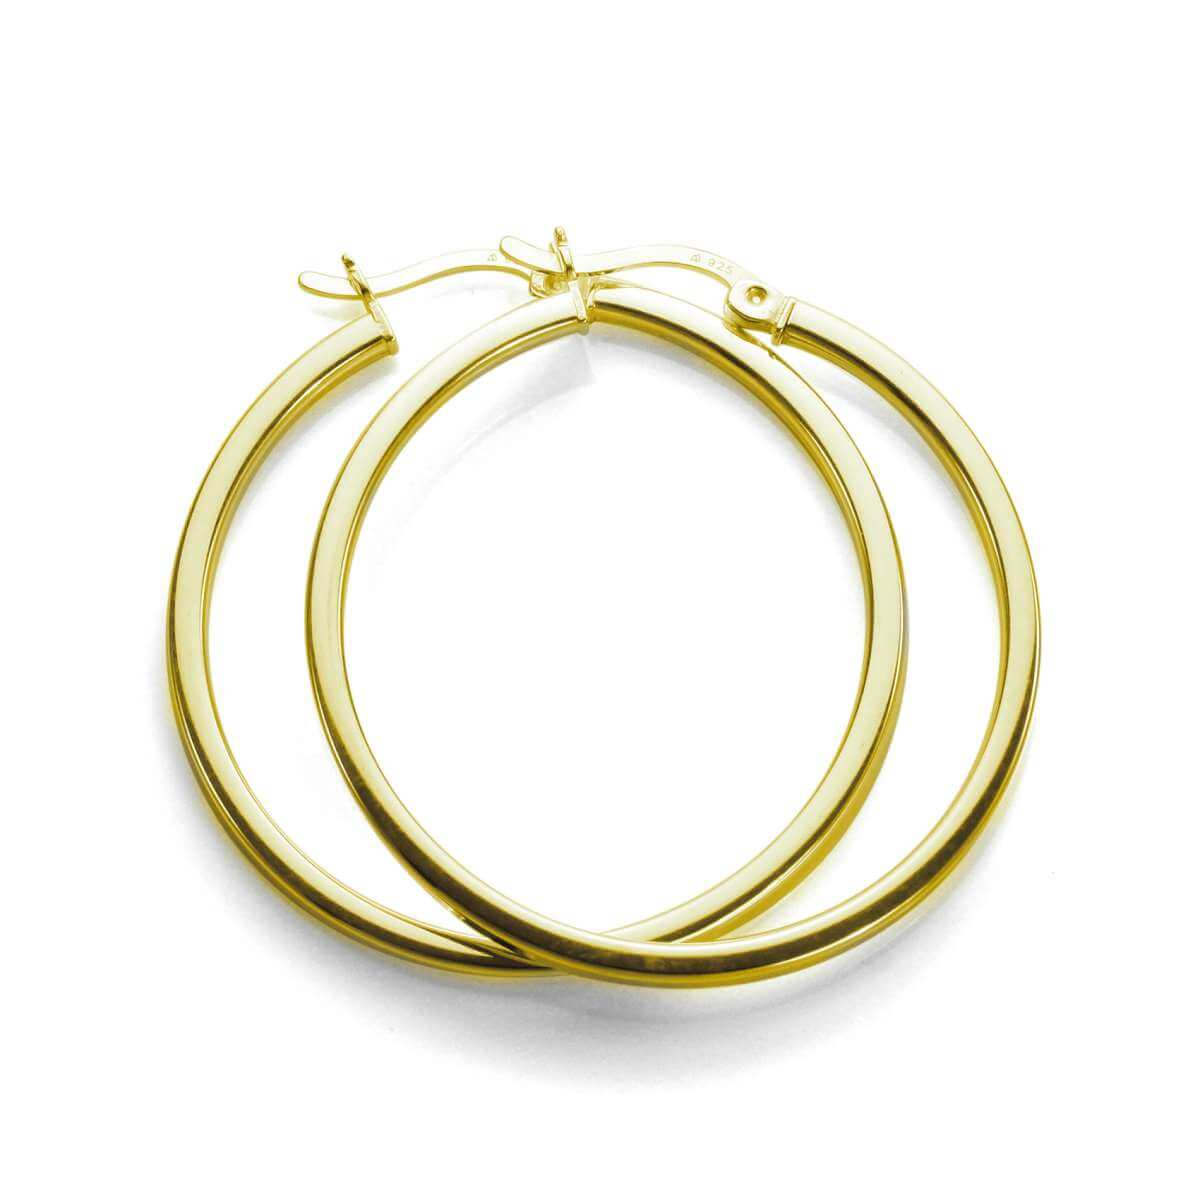 Gold Plated Sterling Silver 30mm Square Tube Hoop Earrings